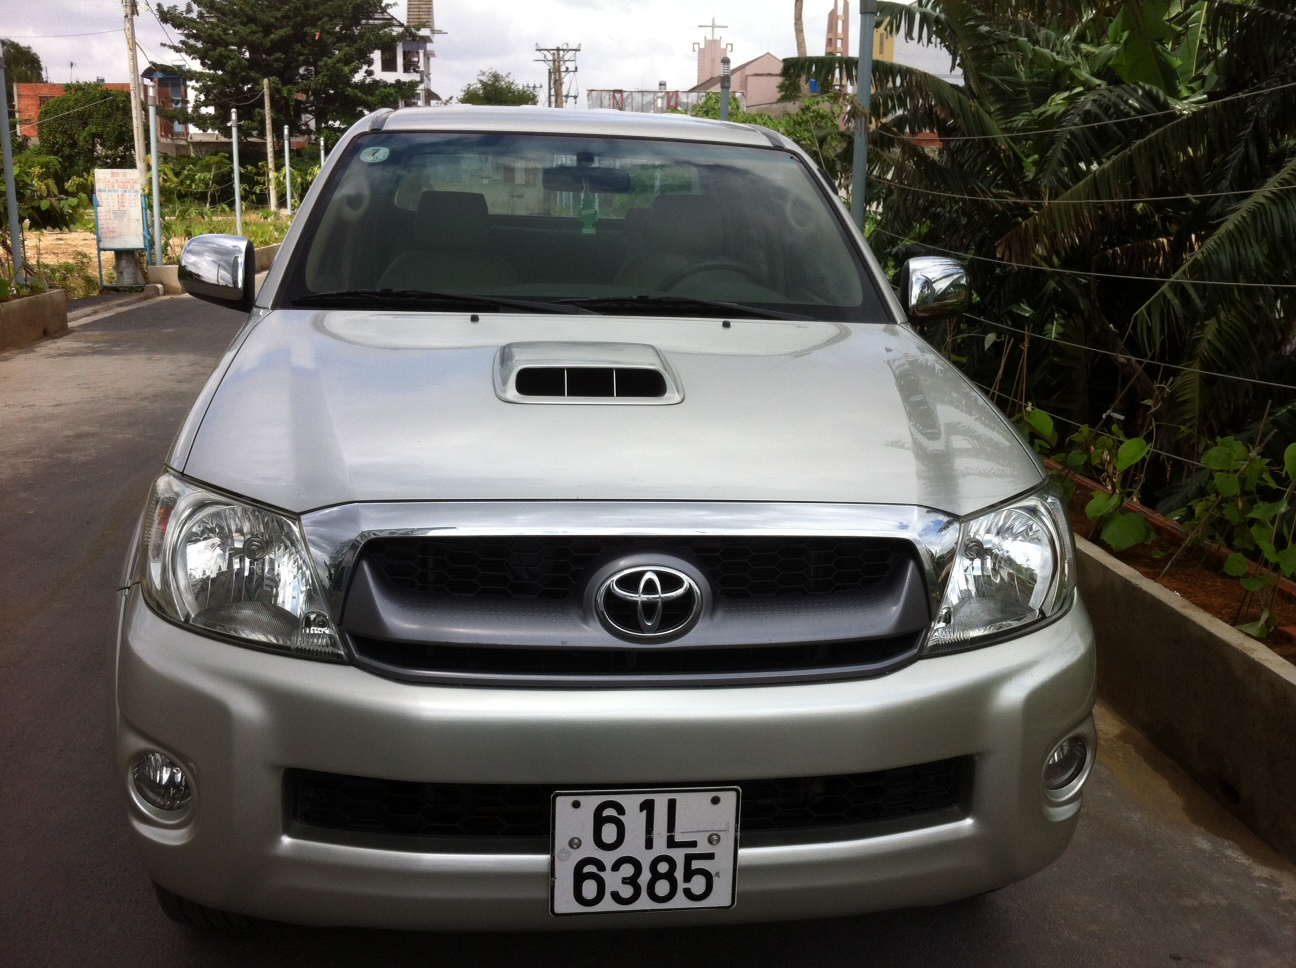 Toyota Hilux 2009 photo - 3